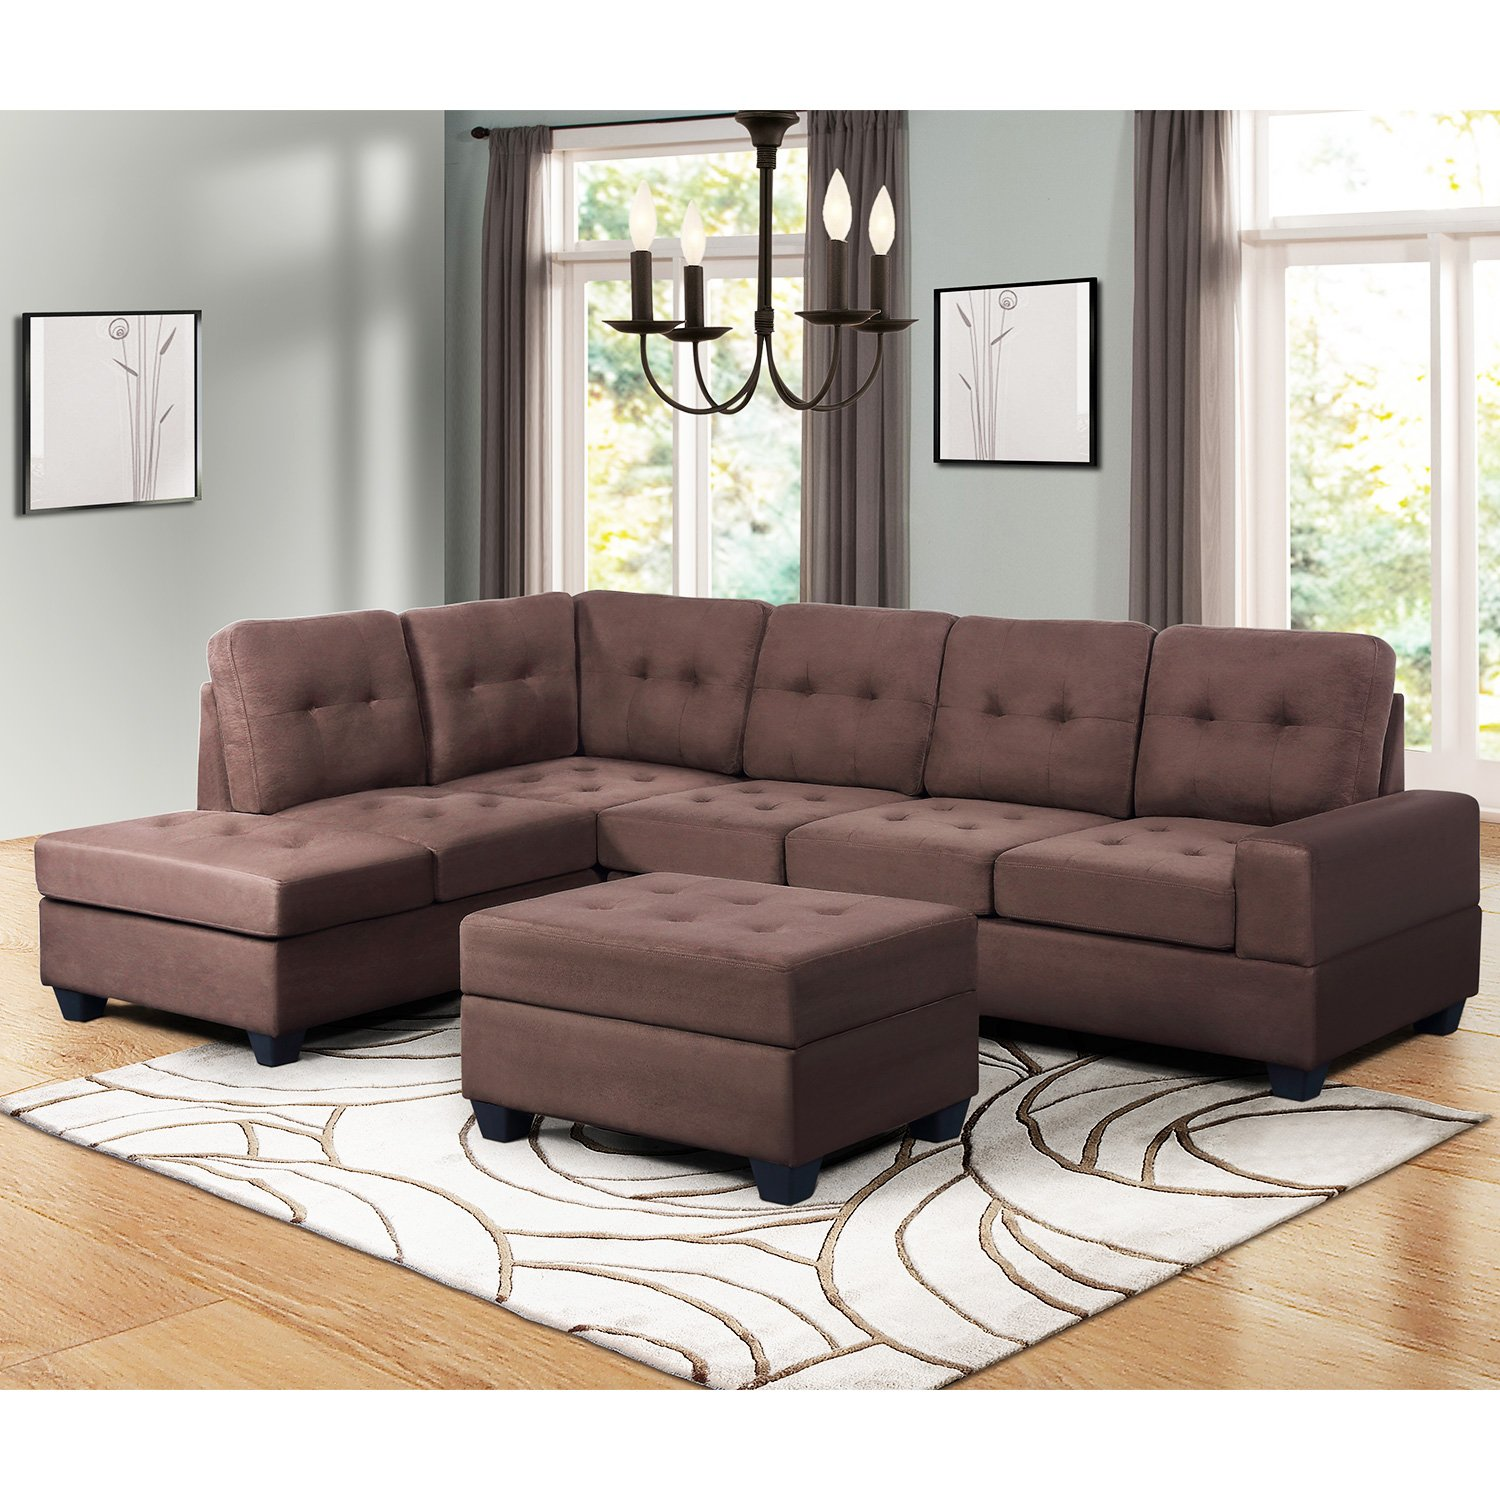 Harper & Bright Designs Sectional Sofa 3 Piece Sofa Sets Couches with Reversible Chaise Lounge Storage Ottoman and Cup Holders for Living Room (Brown) by Harper & Bright Designs